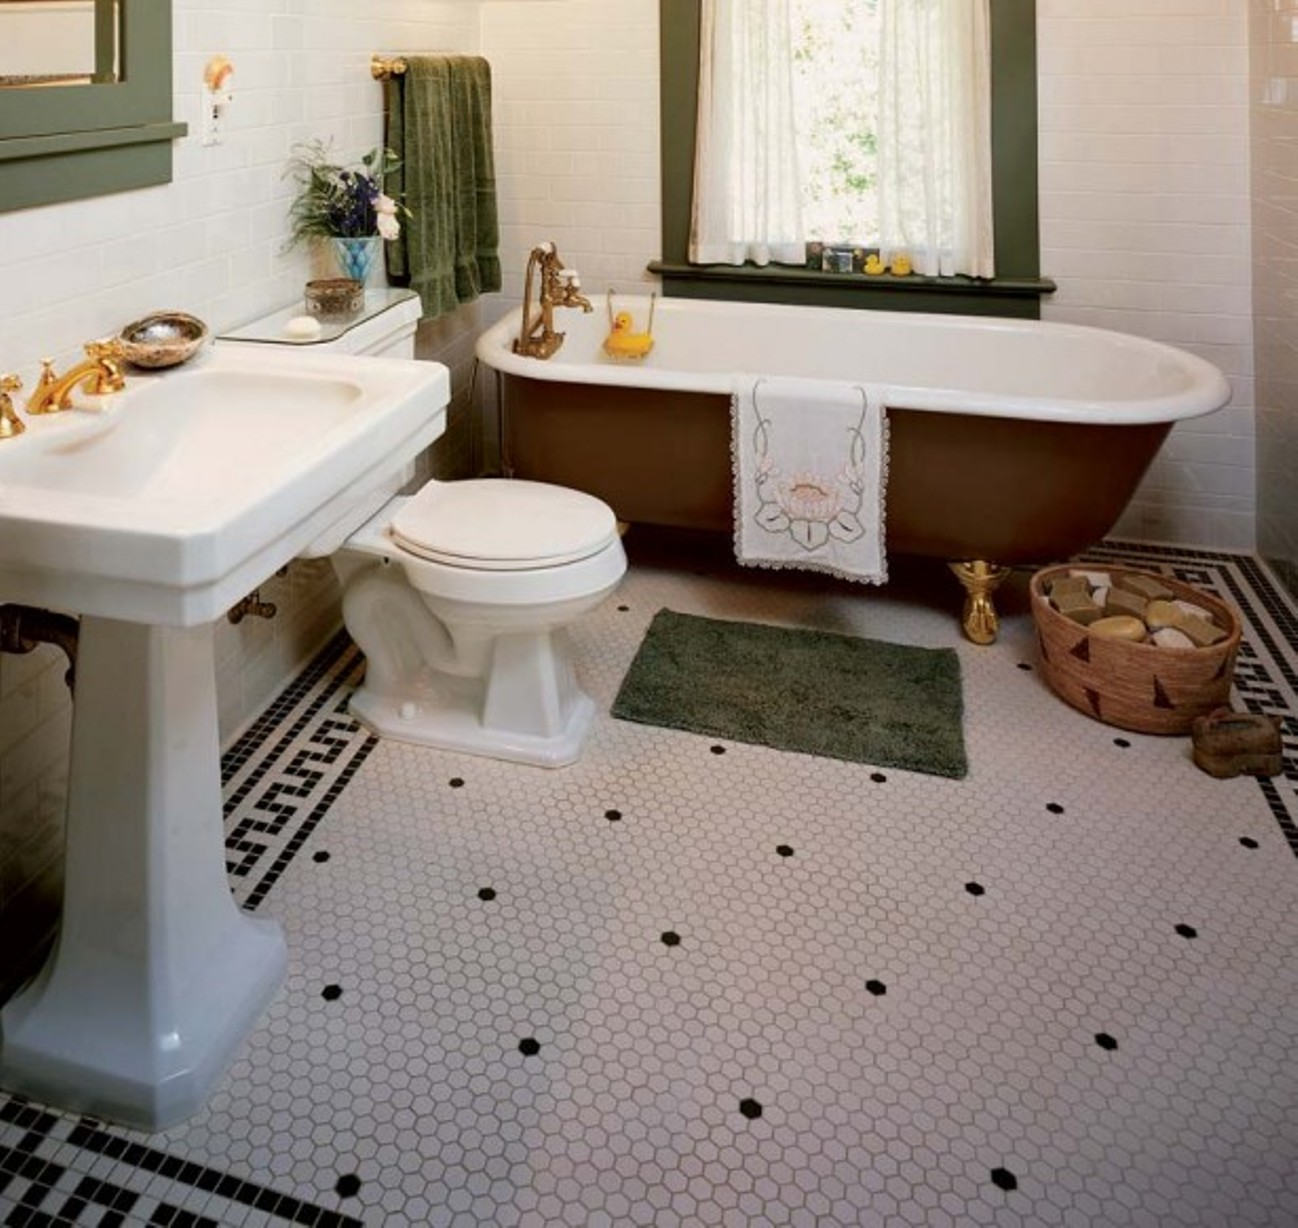 Bathroom Floor Inspiration : Ideas on using hex tiles for bathroom floors